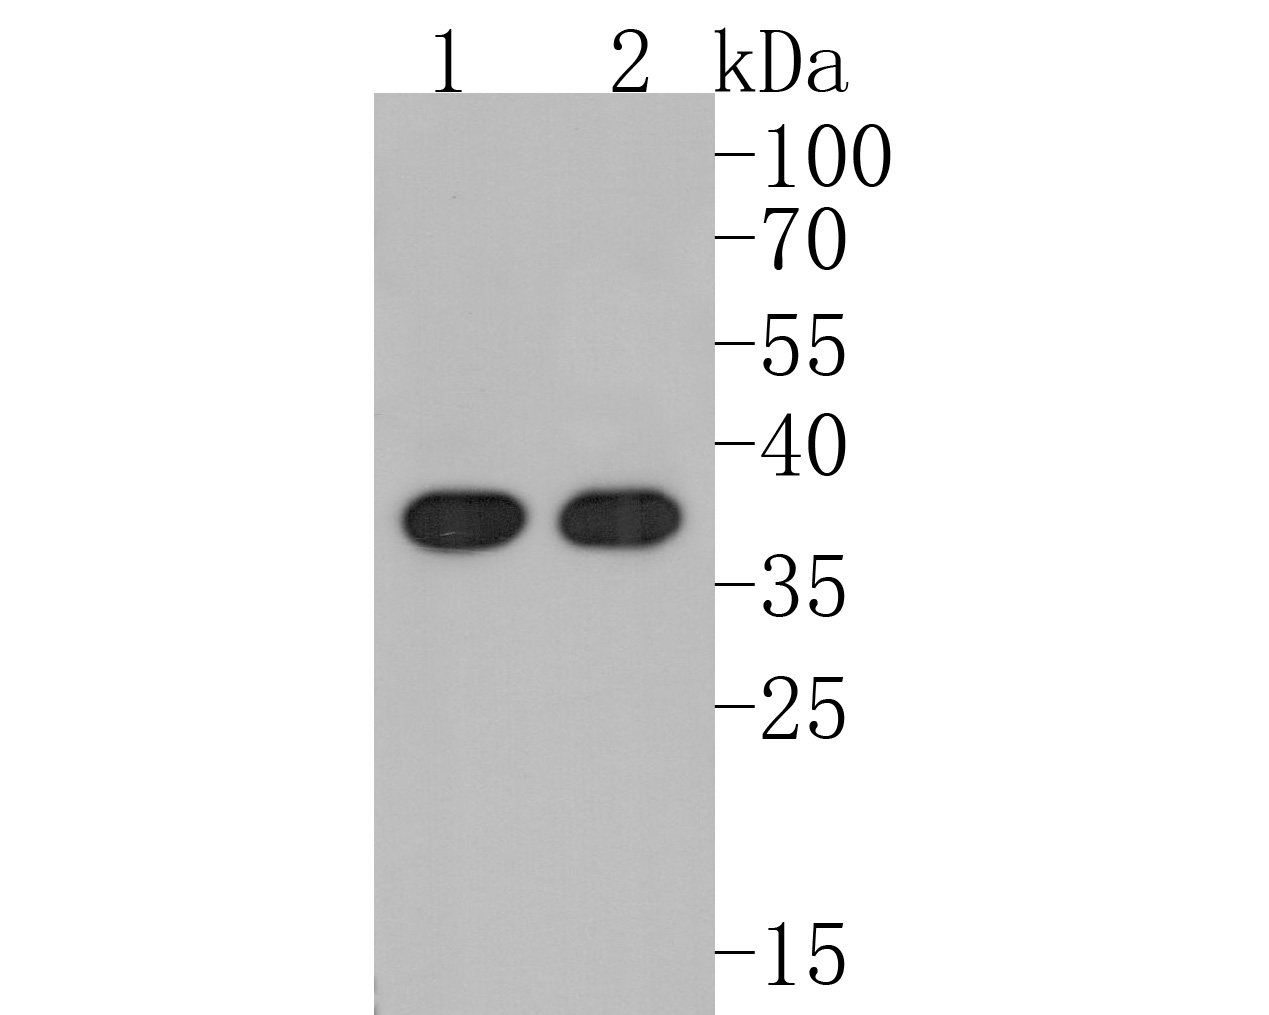 Western blot analysis of Annexin A10 on different lysates. Proteins were transferred to a PVDF membrane and blocked with 5% BSA in PBS for 1 hour at room temperature. The primary antibody (ET1610-57, 1/500) was used in 5% BSA at room temperature for 2 hours. Goat Anti-Rabbit IgG - HRP Secondary Antibody (HA1001) at 1:5,000 dilution was used for 1 hour at room temperature.<br /> Positive control: <br /> Lane 1: Hela cell lysate<br /> Lane 2: Jurkat cell lysate